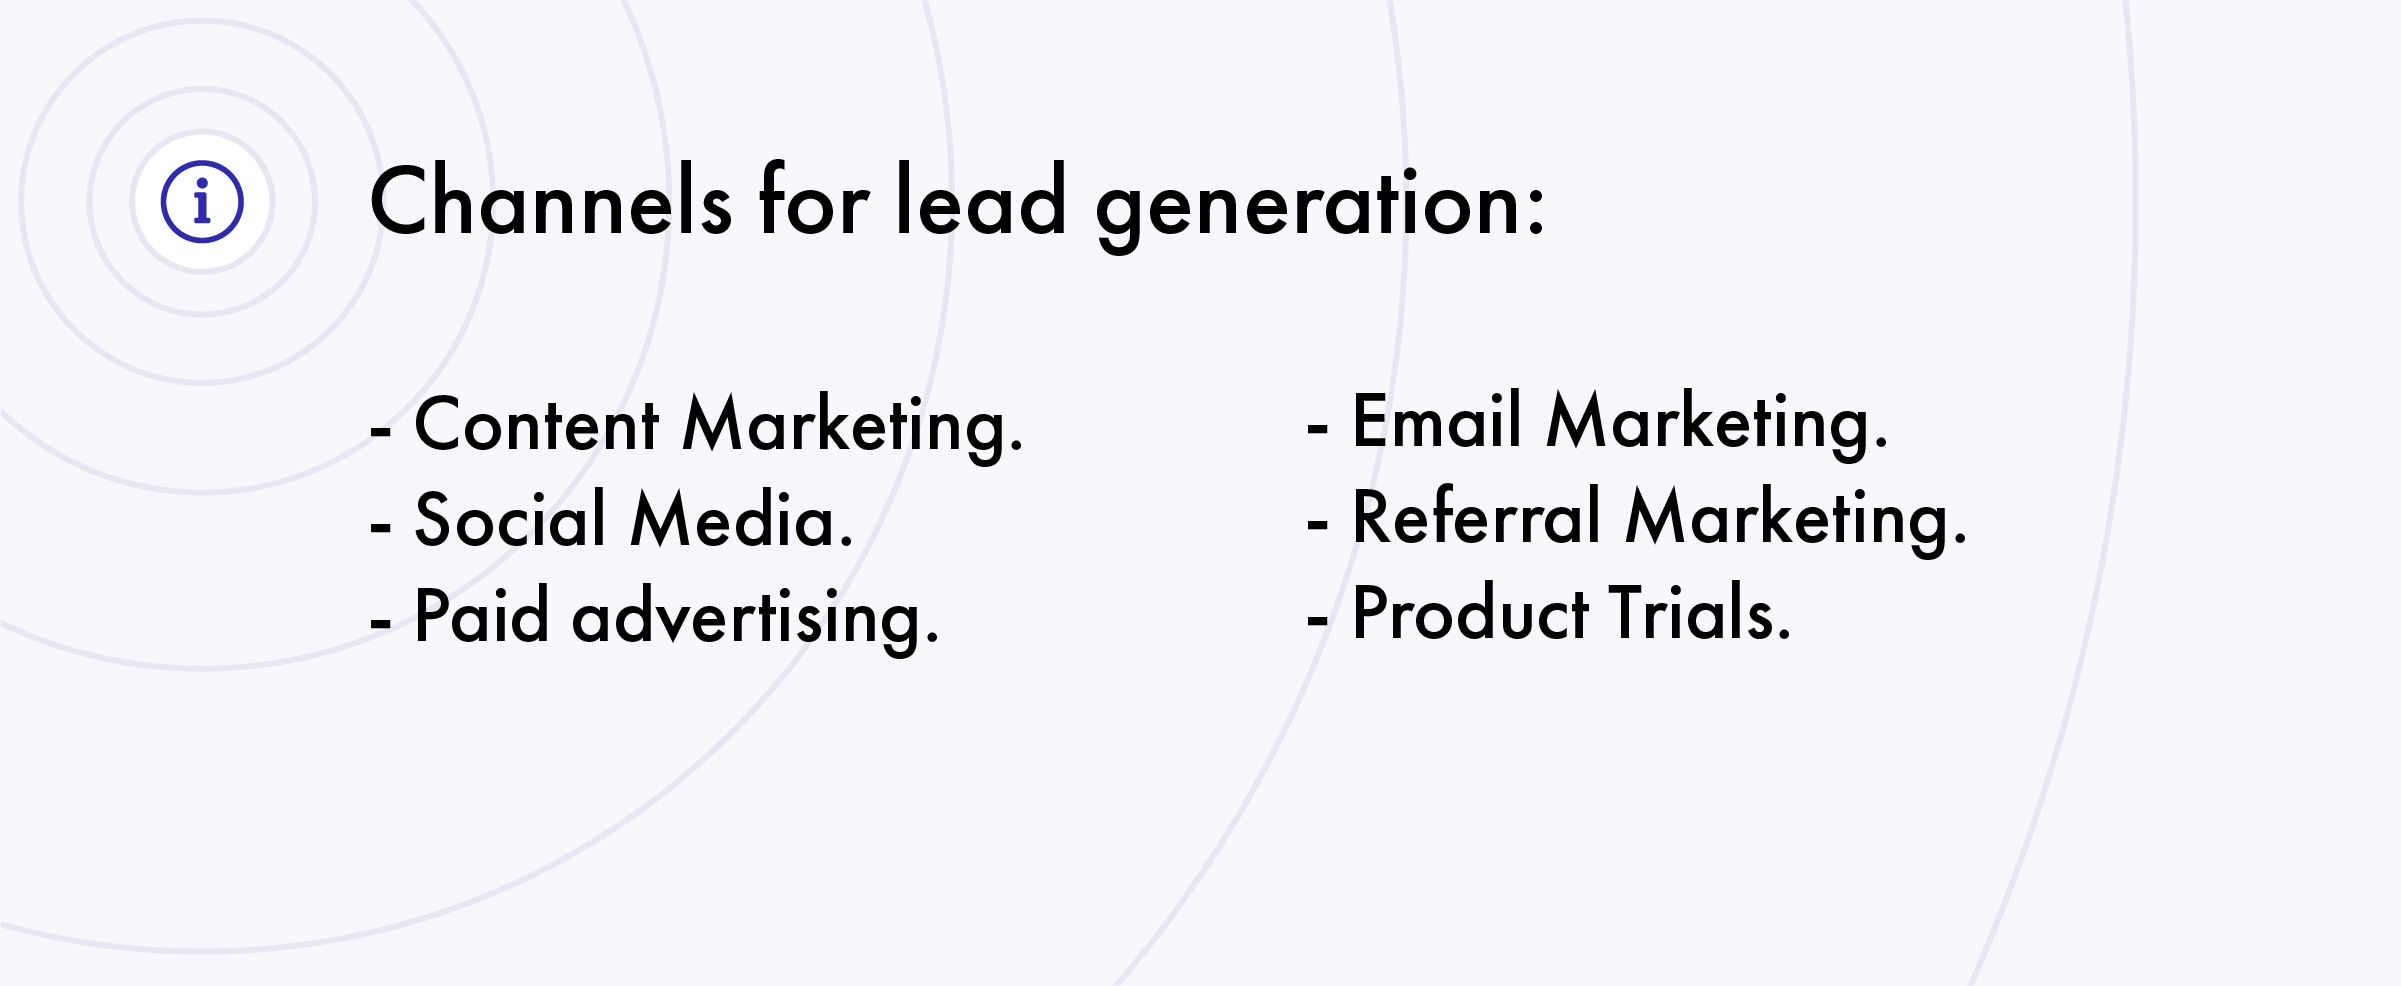 marketing channels for lead generation